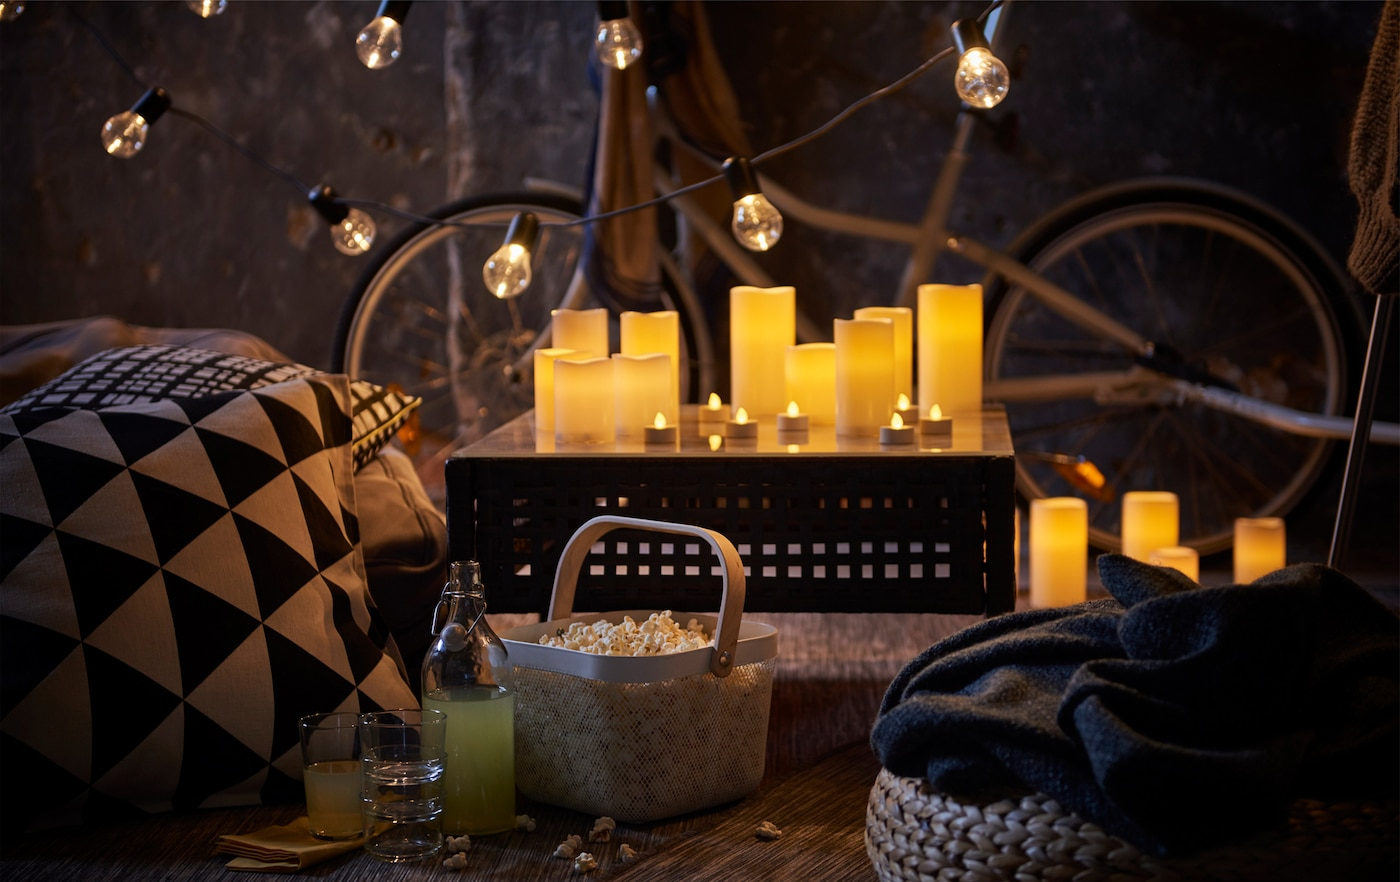 Some textiles, lighting, music and friends can turn any spot into an evening party venue.